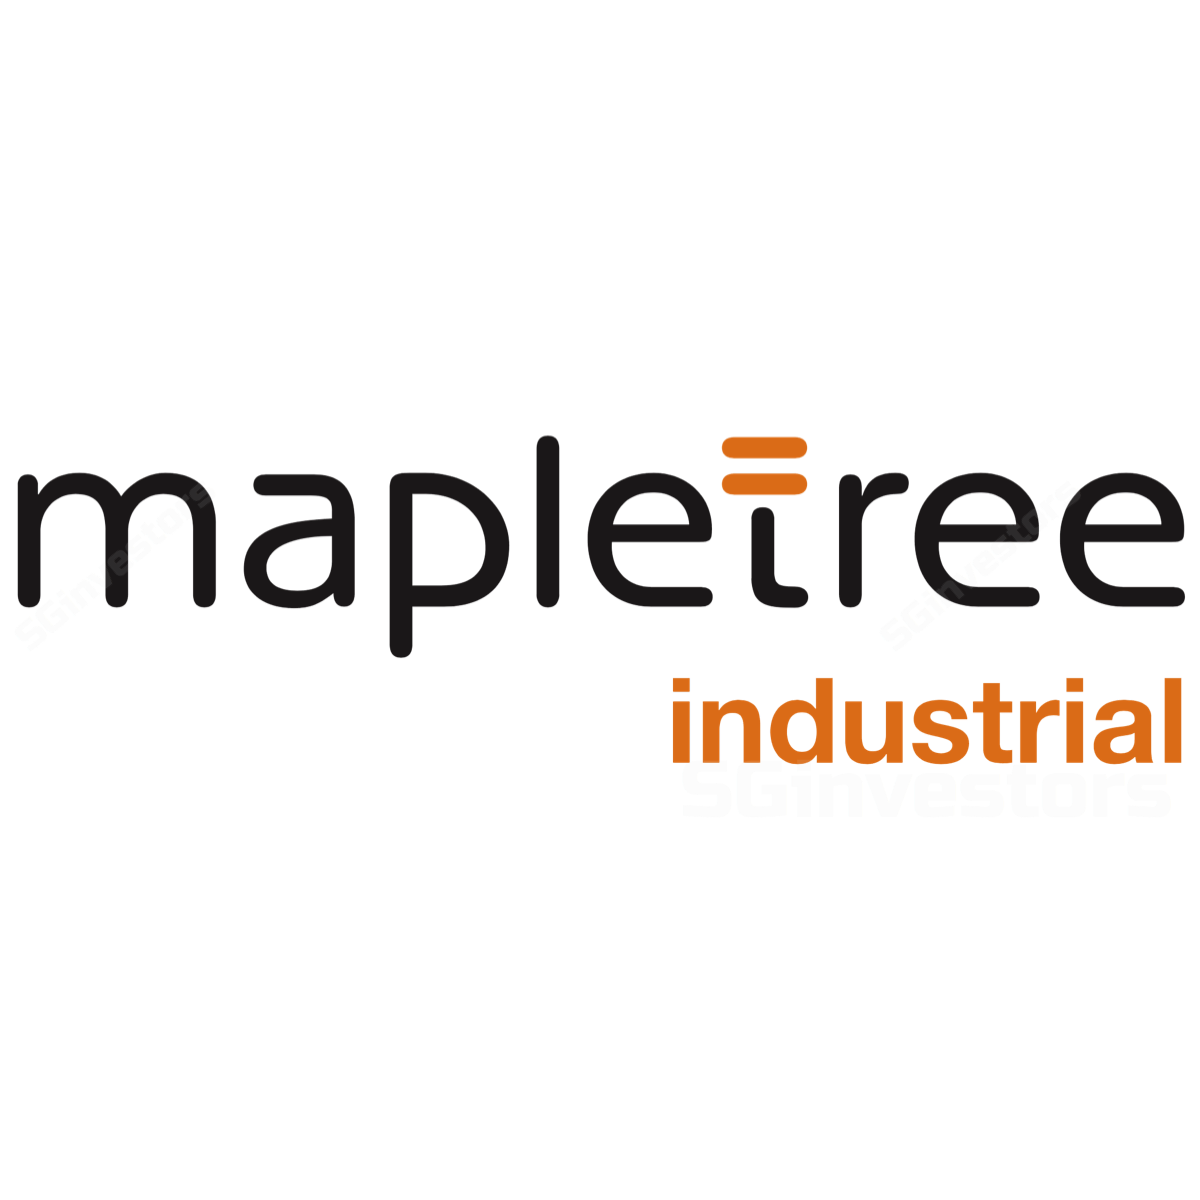 Mapletree Industrial Trust - UOB Kay Hian 2017-07-26: 1QFY18 Results Of MIT In-line